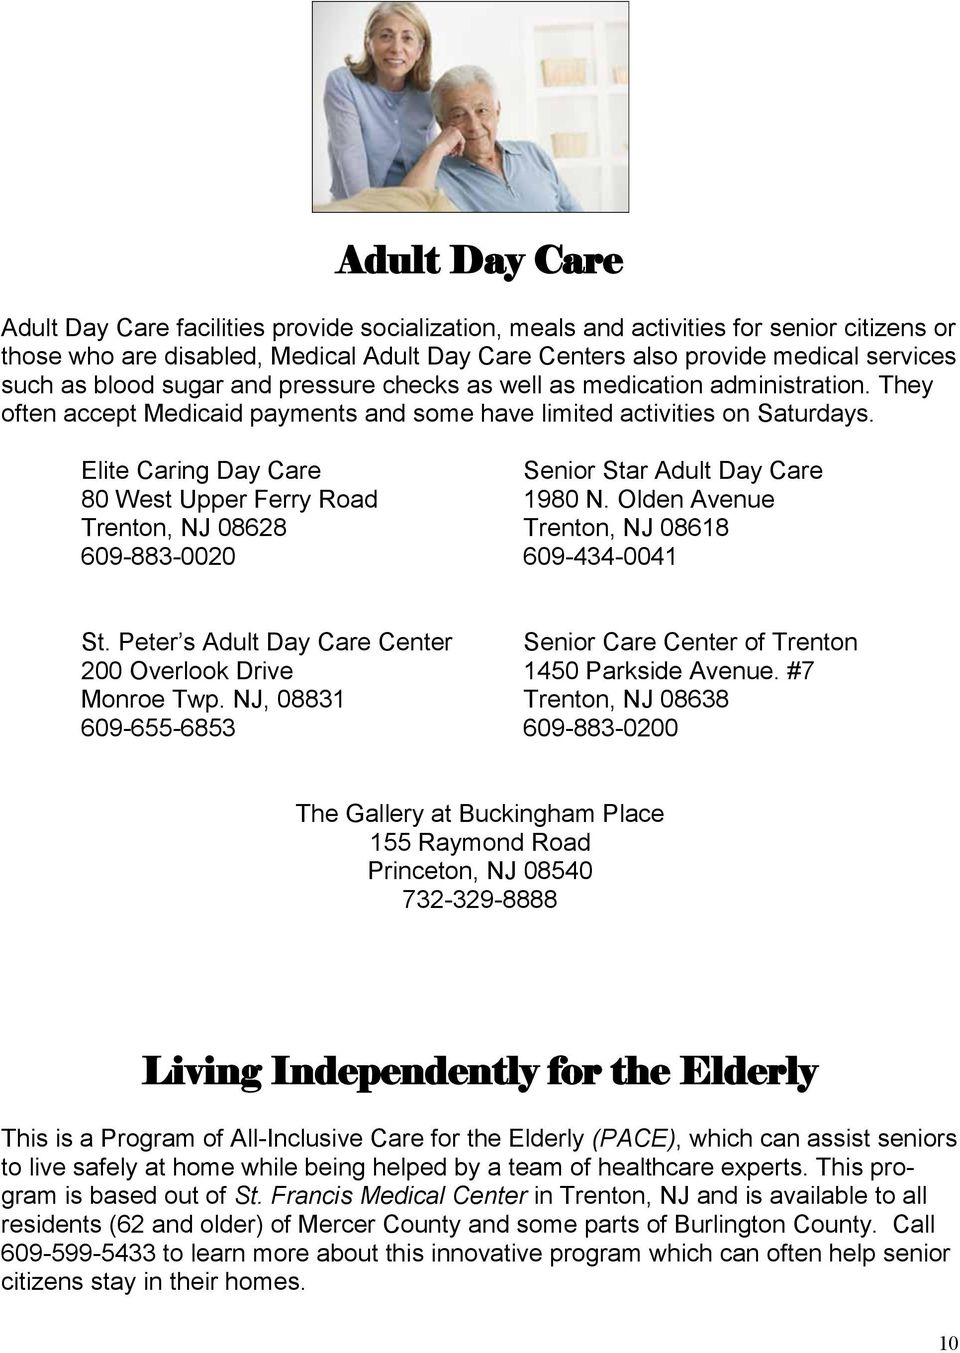 Elite Caring Day Care Senior Star Adult Day Care 80 West Upper Ferry Road 1980 N. Olden Avenue Trenton, NJ 08628 Trenton, NJ 08618 609-883-0020 609-434-0041 St.